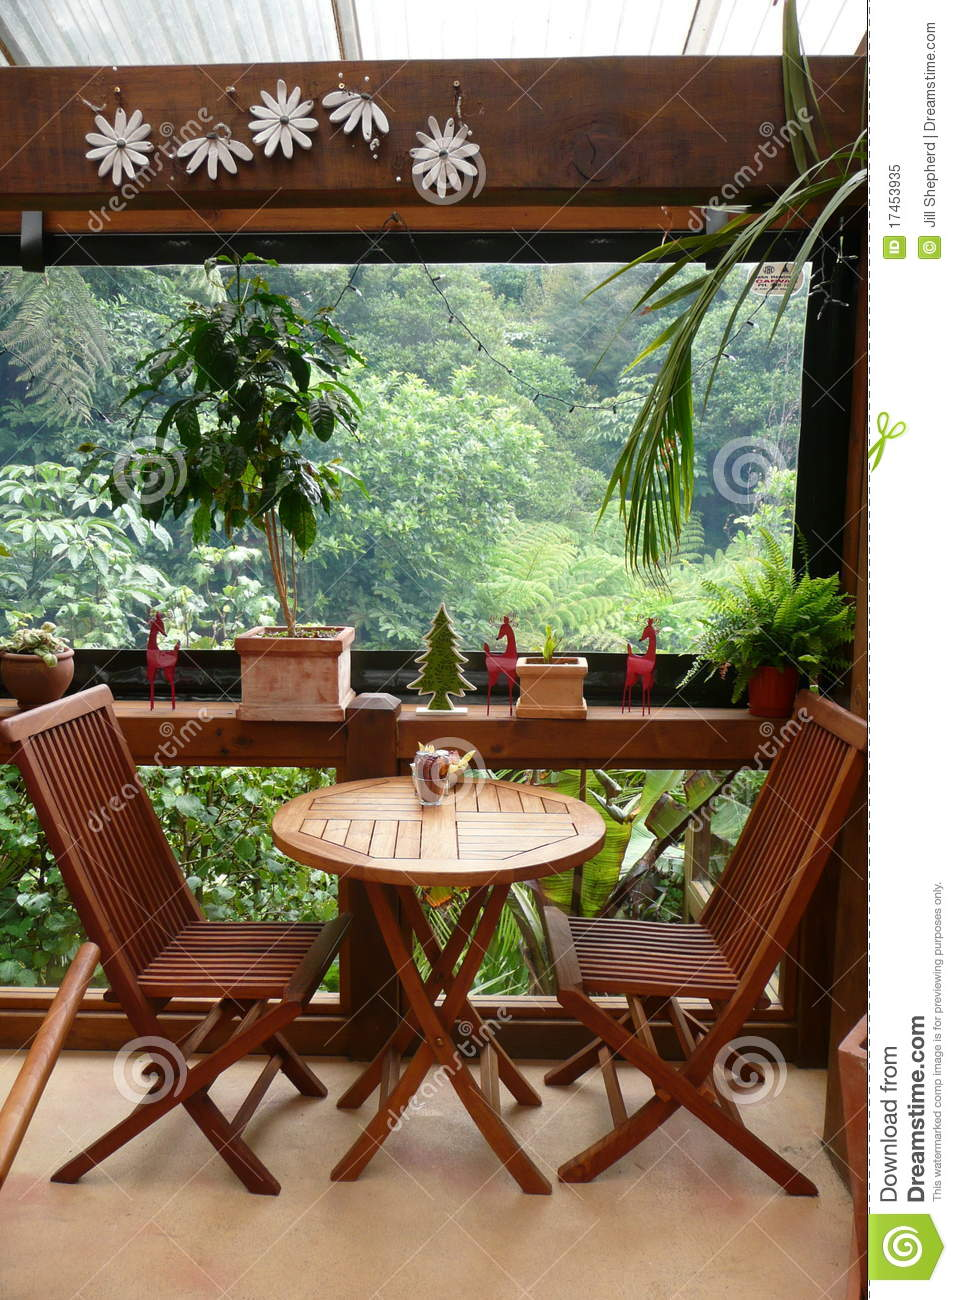 Garden Cafe Table For Two Royalty Free Stock Photo